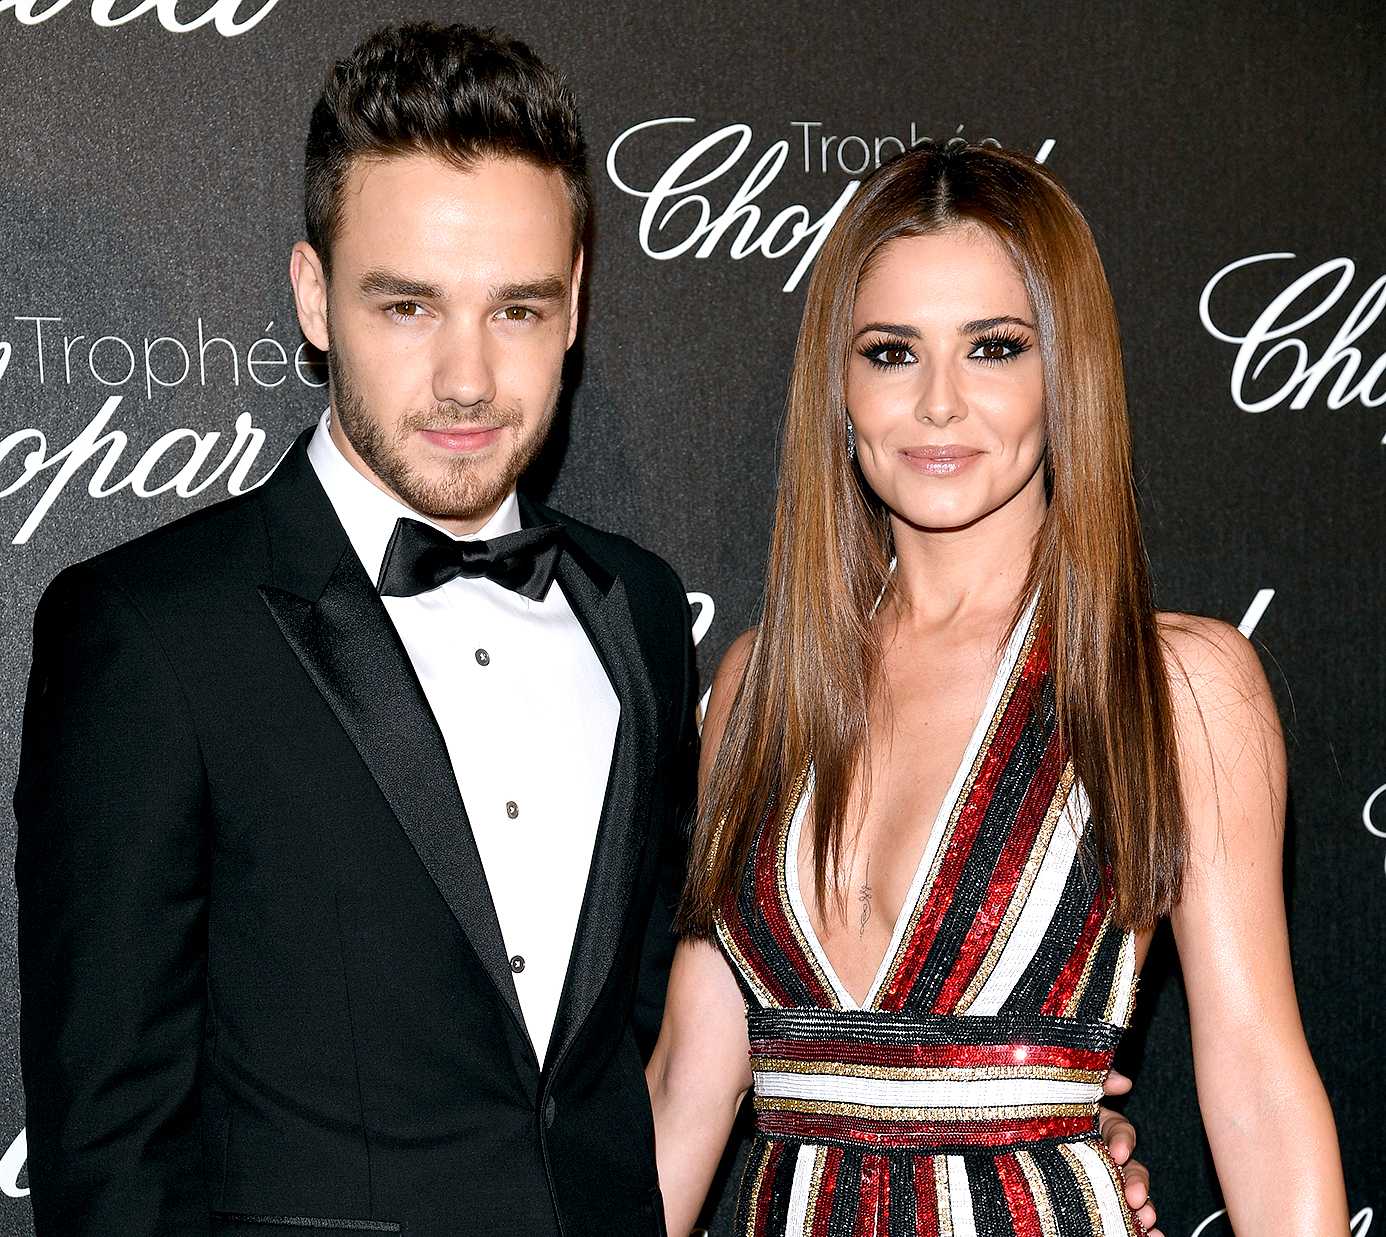 Liam Payne and Cheryl Cole attend the Chopard Trophy Ceremony during The 69th Annual Cannes Film Festival on May 12, 2016 in Cannes.